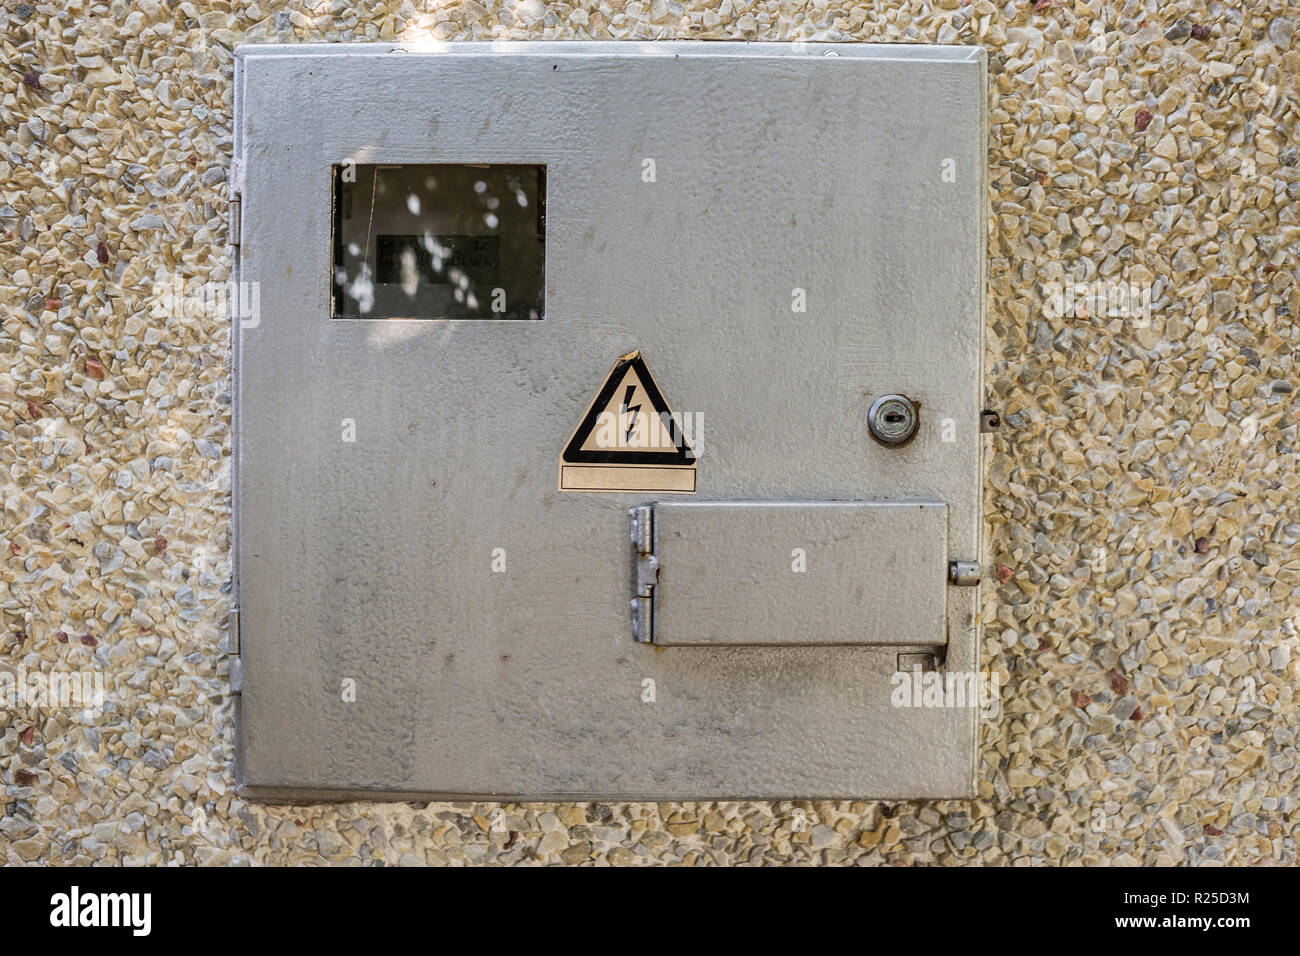 Close-up of locked electrical metal light blue meter box with warning caution sign outside on exterior house wall. Measurement tool and energy saving  - Stock Image